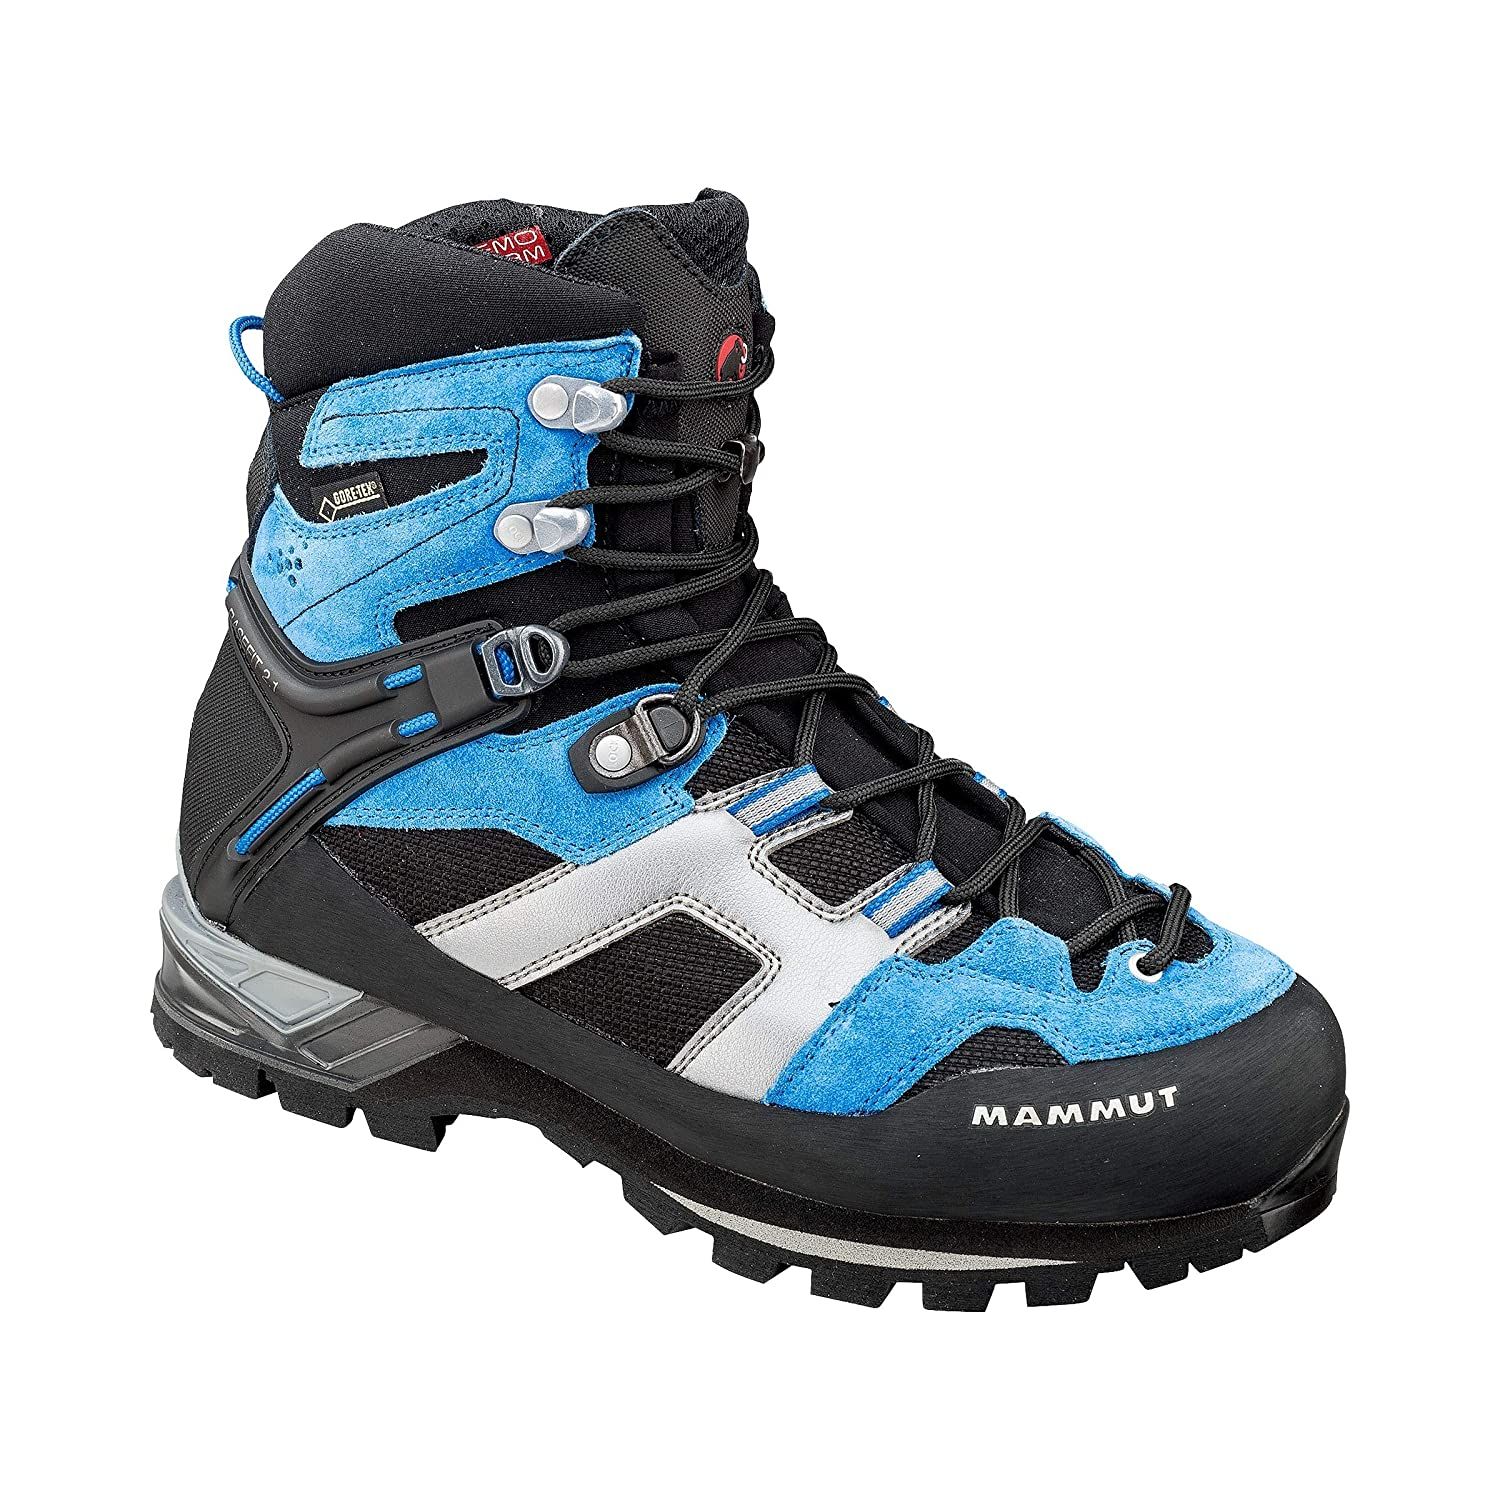 Mammut Damen Stiefel Magic High GTX Arctic schwarz – Stiefel Damen